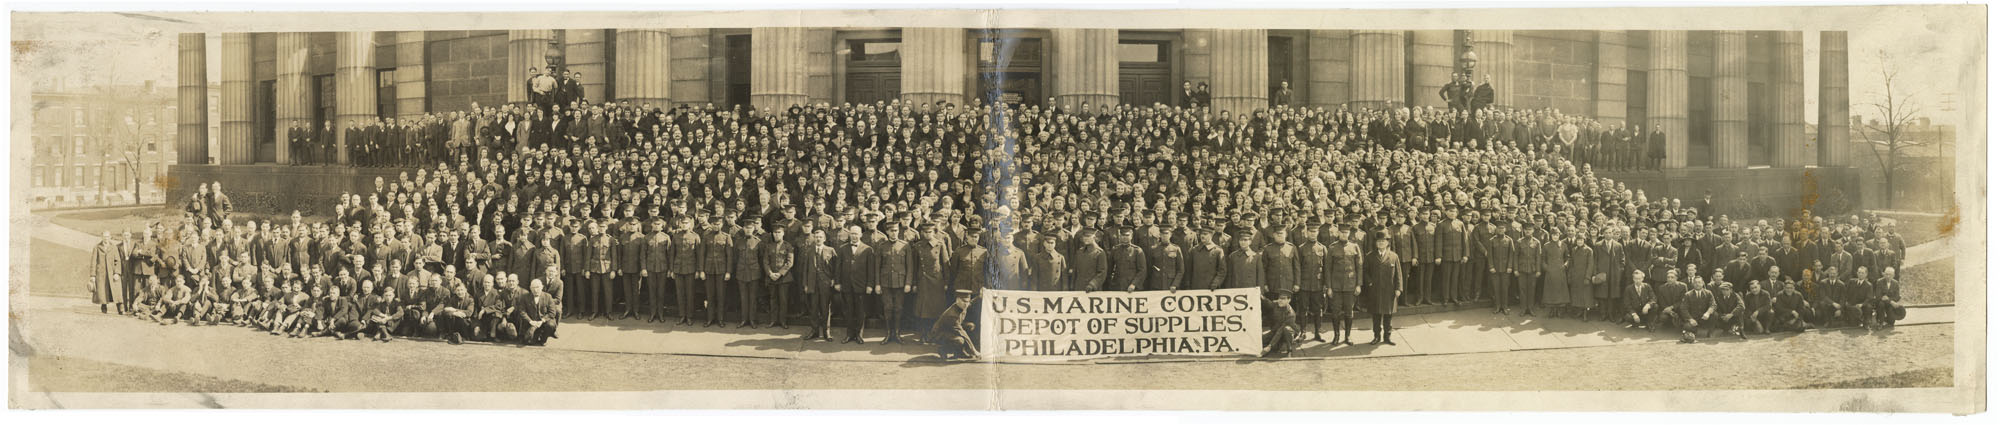 Workers at the U.S. Marine Corps Depot of Supplies, Philadelphia, ca. 1918. Gelatin silver photograph.